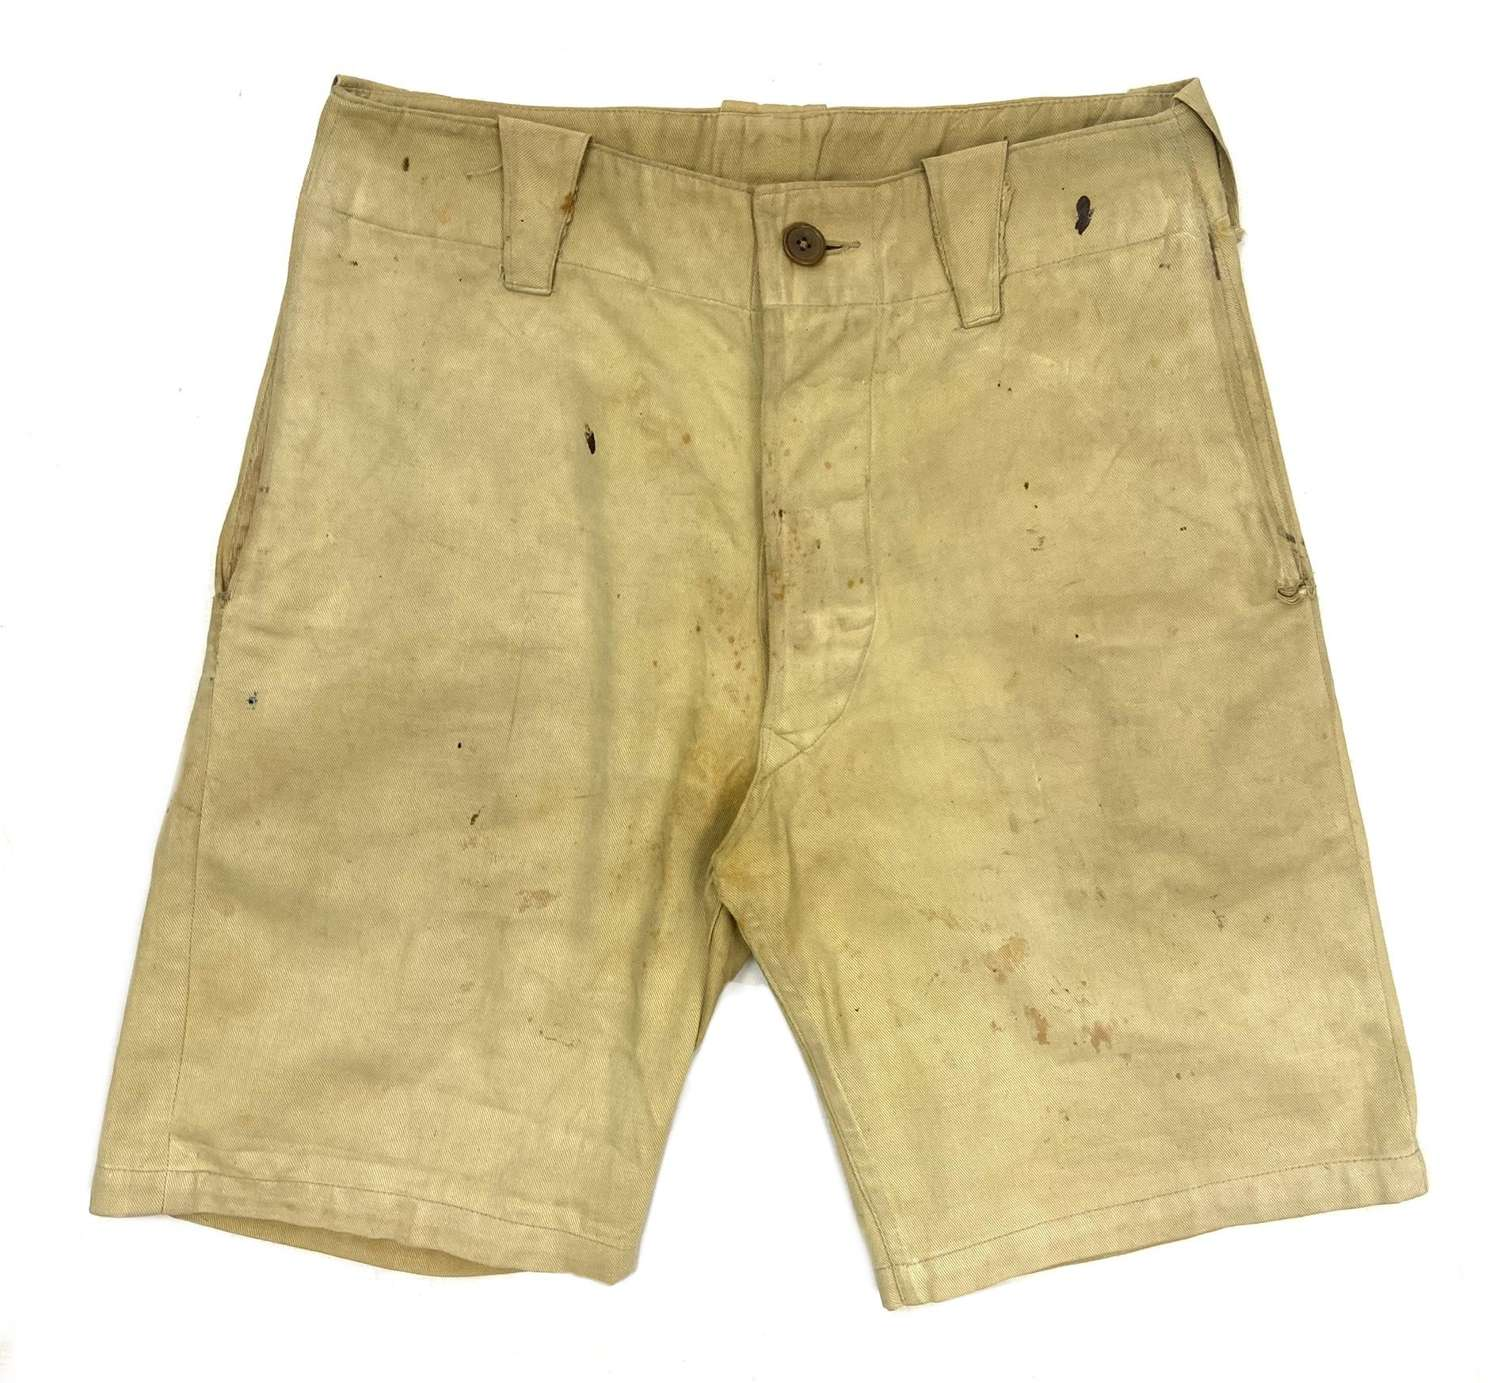 Original 1940s British Workwear Khaki Shorts